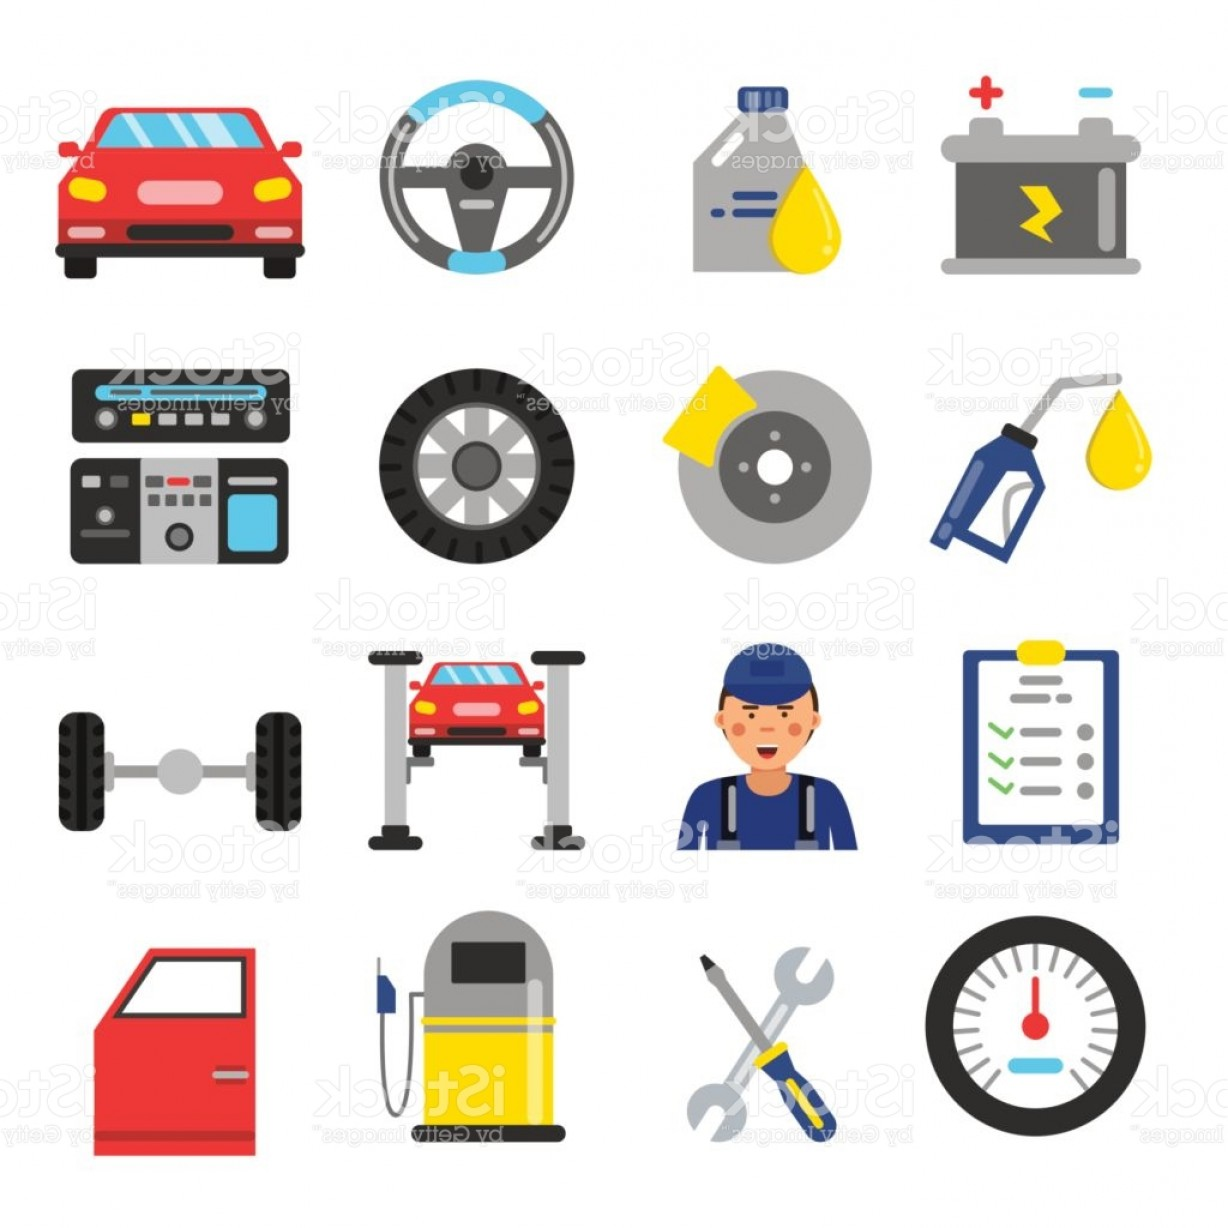 Auto Mobile Vector Art: Car Service Icons Set Different Parts Of Automobile Vector Illustrations In Flat Gm